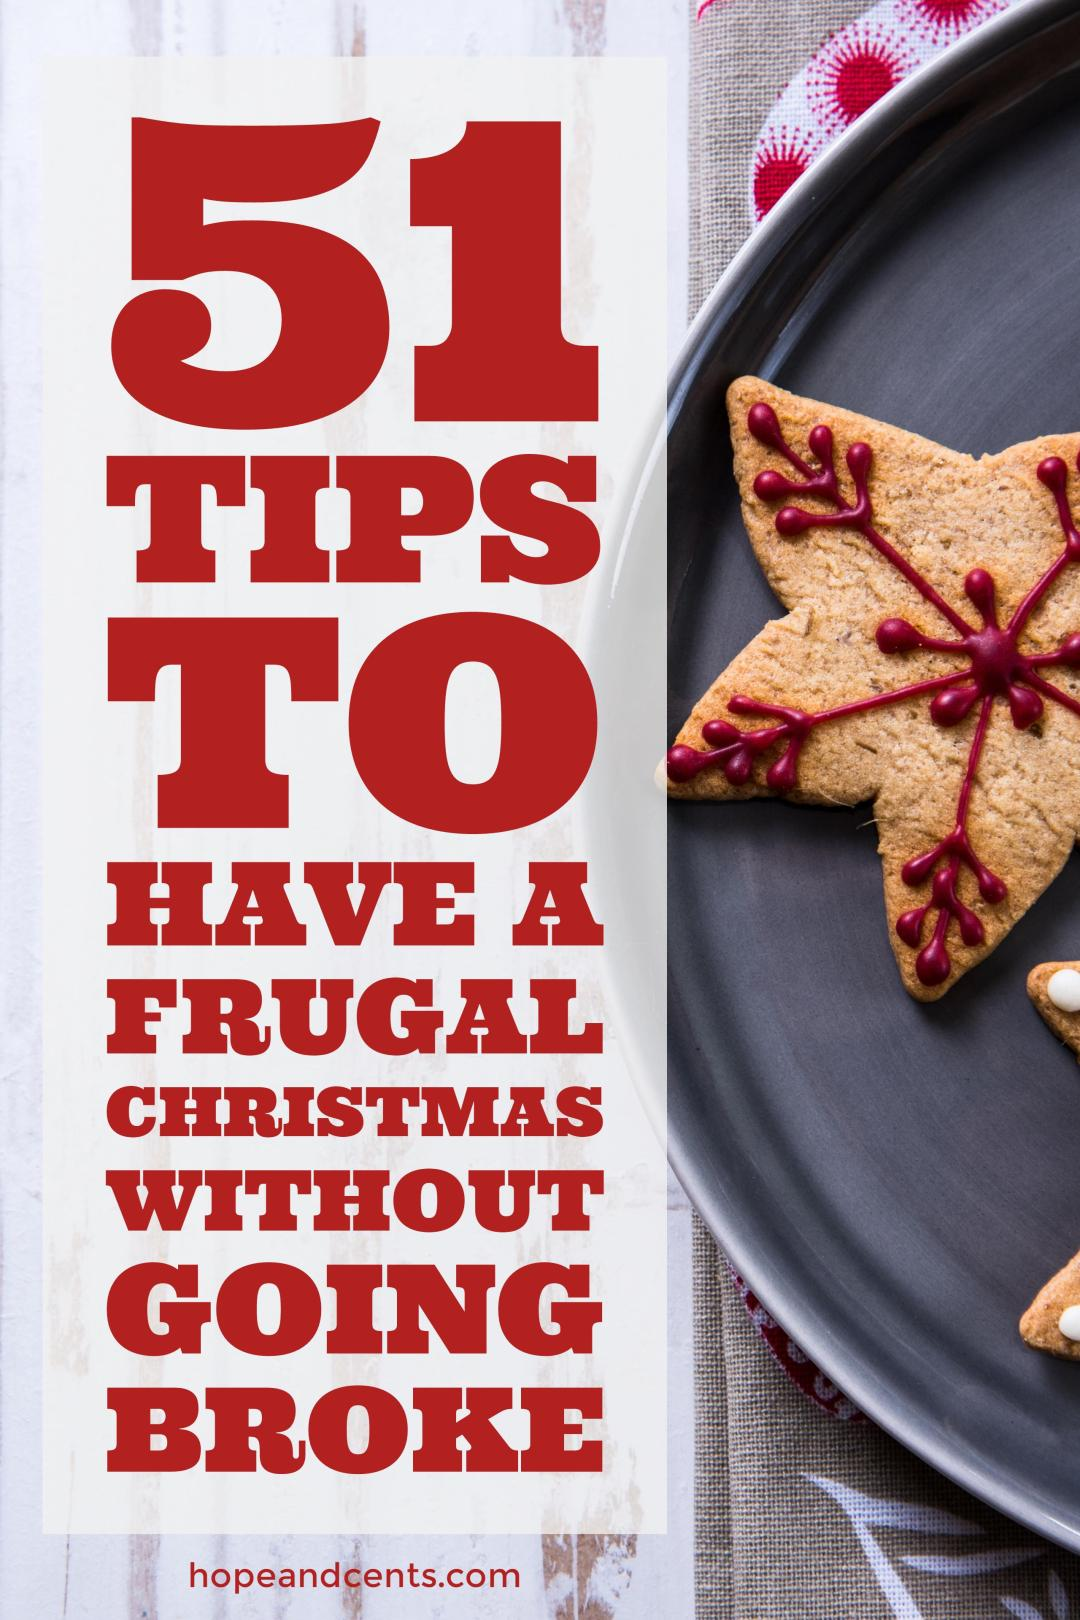 Tons of tips for a frugal and debt-free Christmas and holiday season. Love these suggestions to keep the holidays fun and affordable.